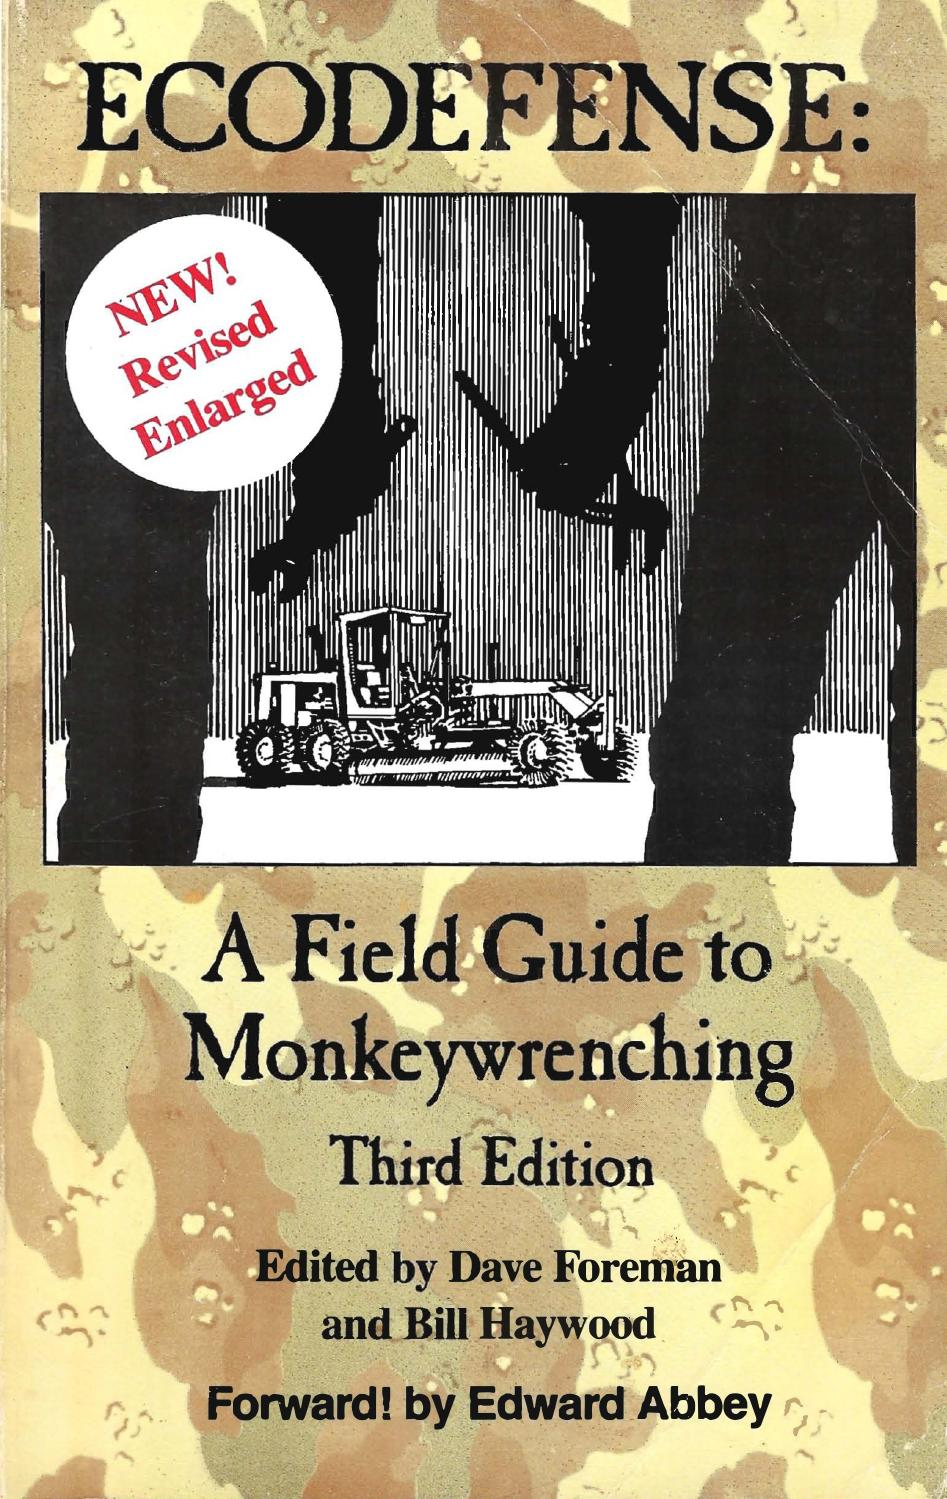 Eco defense a field guide to monkey wrenching (1) by kalitpf